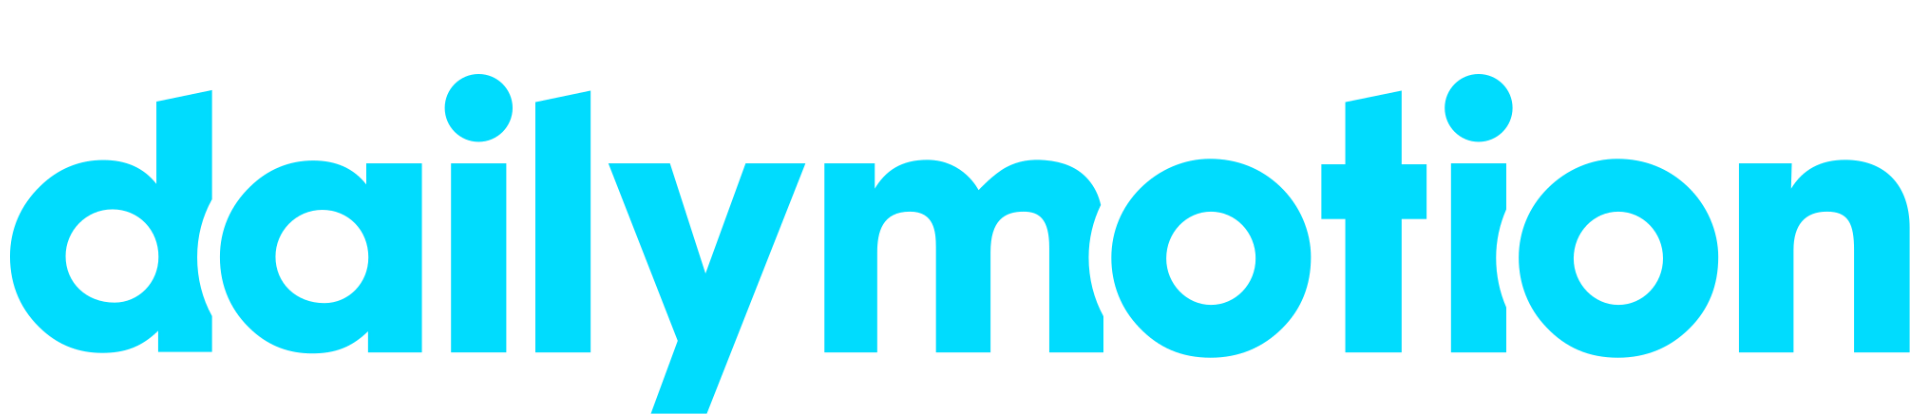 dailymotion, Video, Videoplayer, Musik, Music, Streaming, Stream